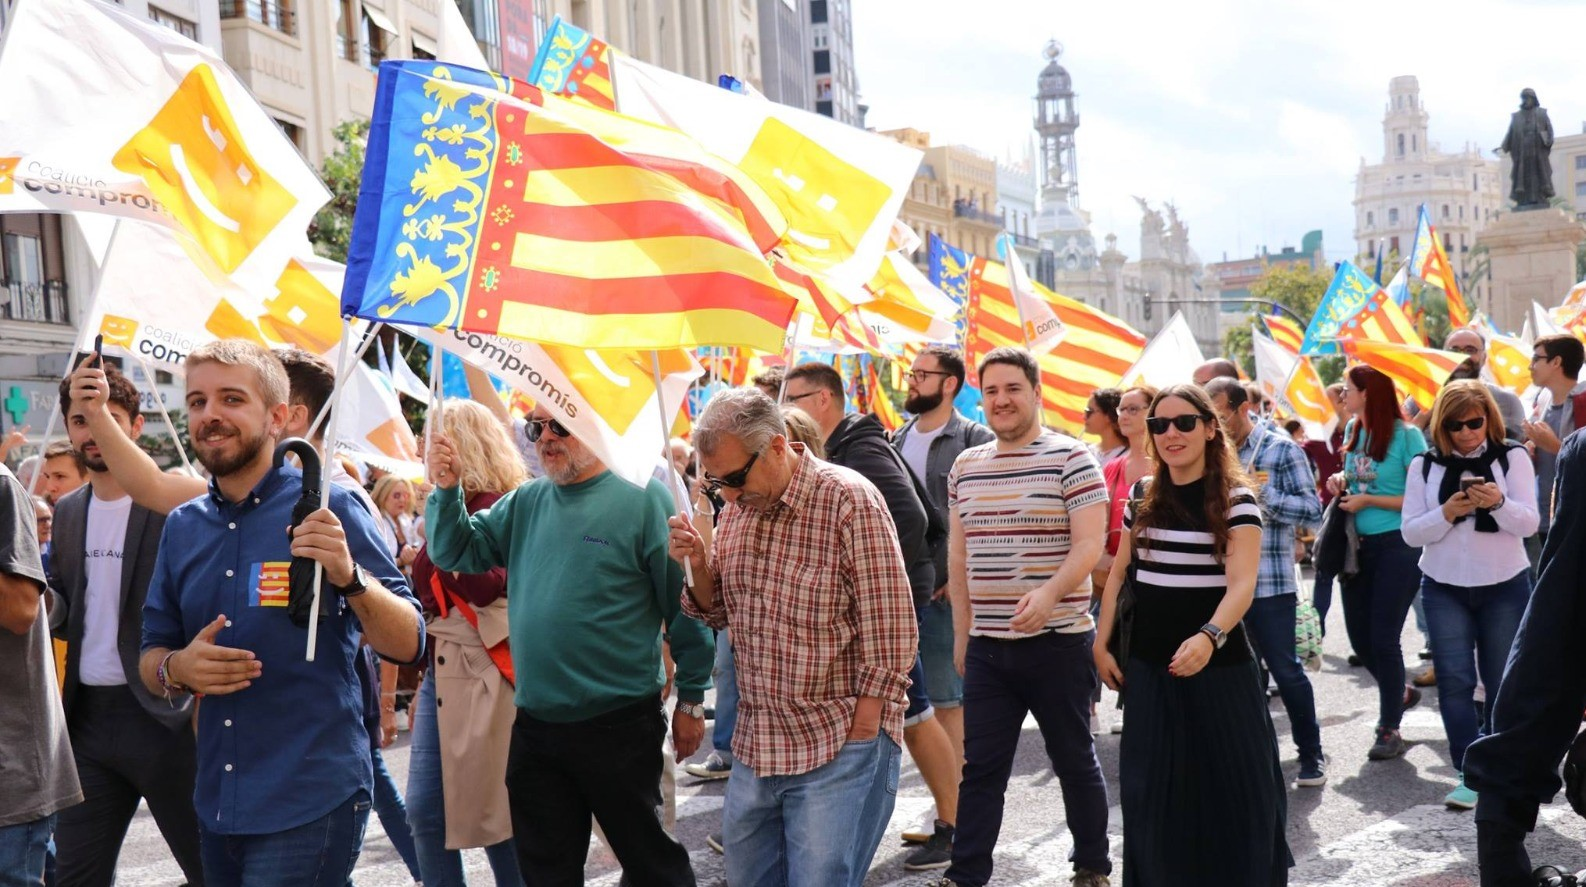 Valencian National Day: Bloc calls for a green transition towards a socially cohesive country